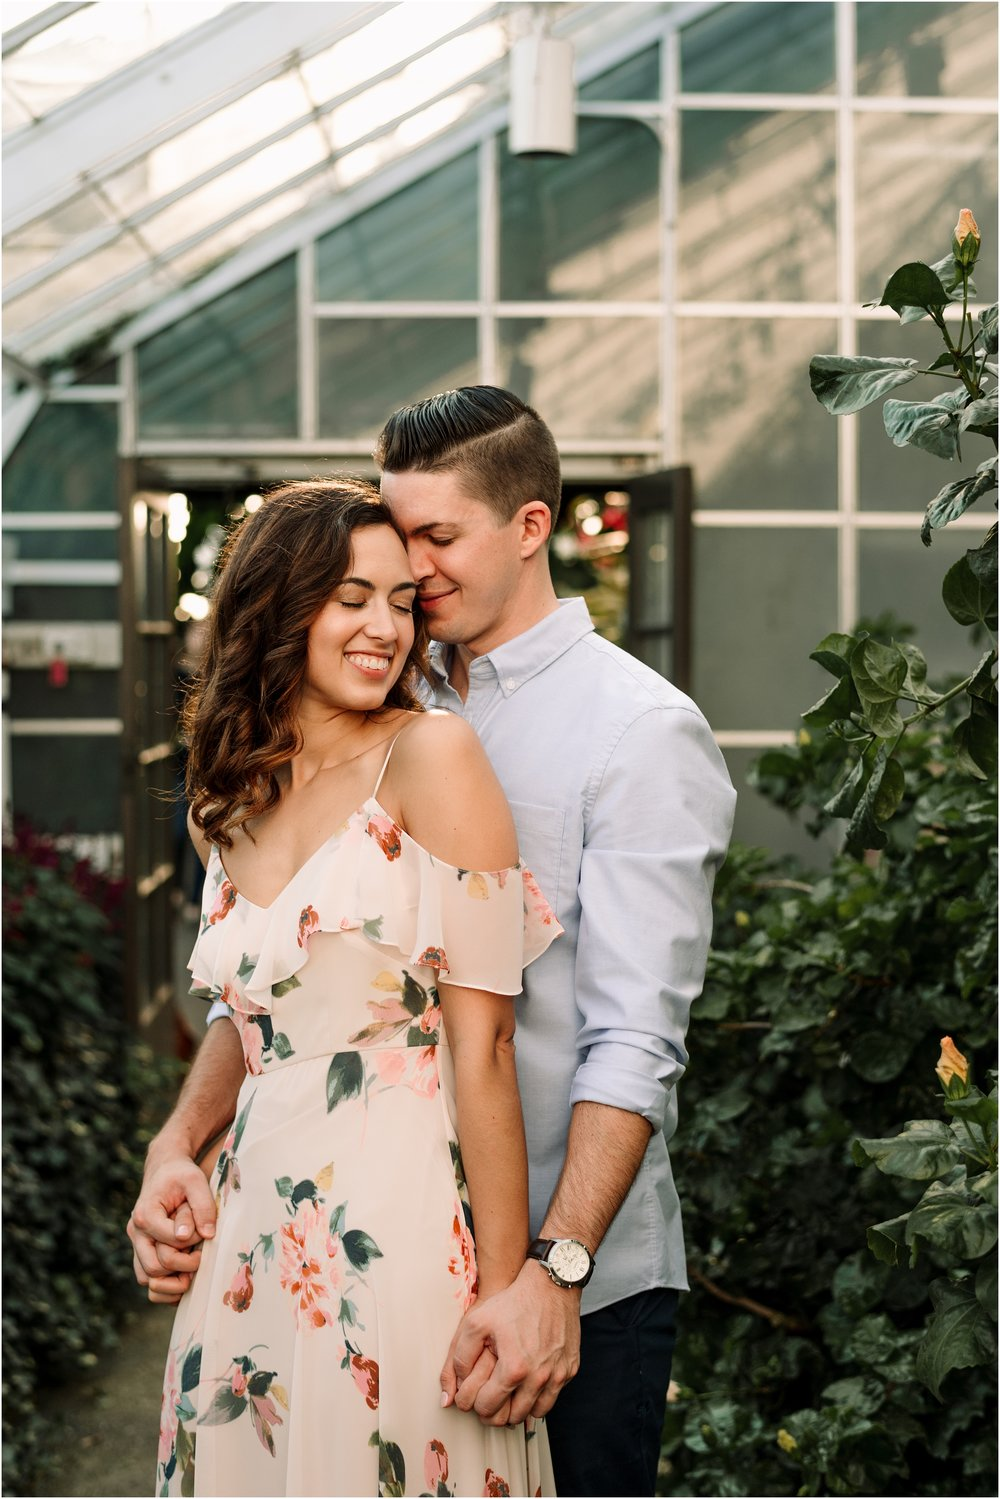 hannah leigh photography longwood gardens engagement session_2590.jpg